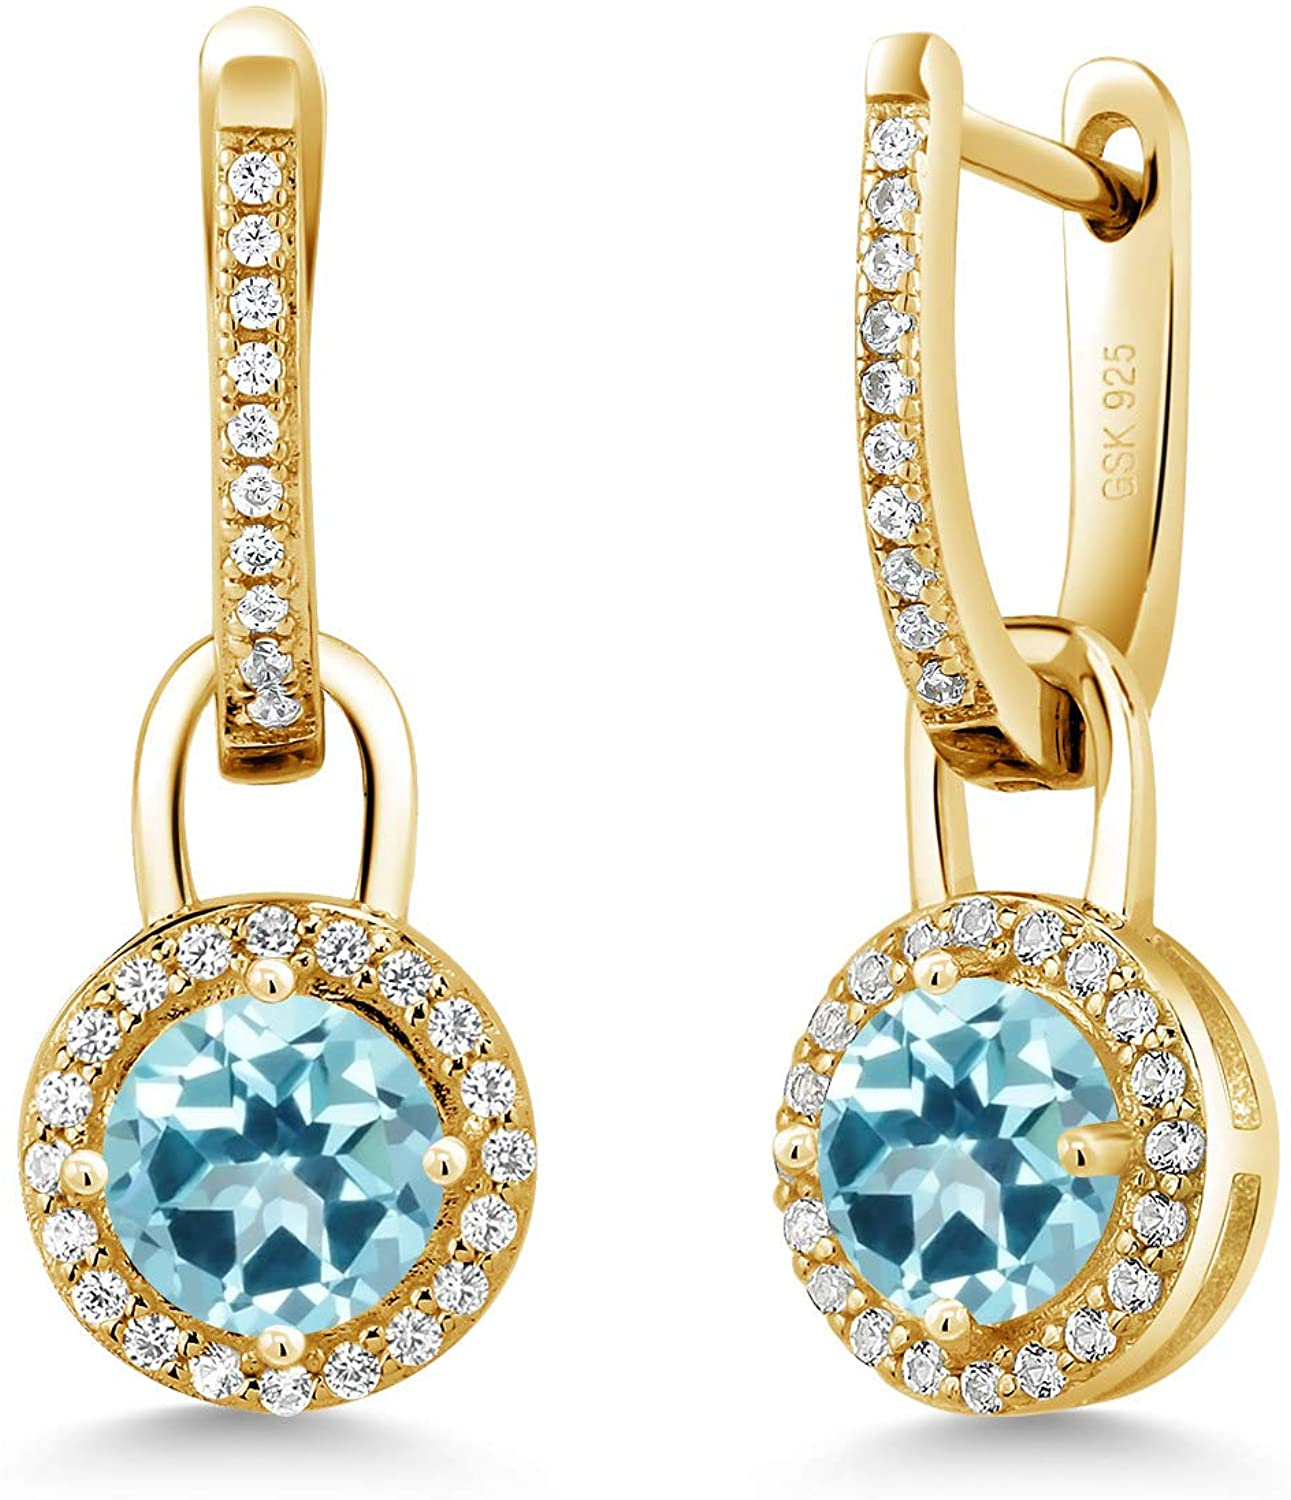 18K Yellow Gold Plated Silver Dangle Earrings White Created Sapphire and Set with Ice Blue Topaz from Swarovski